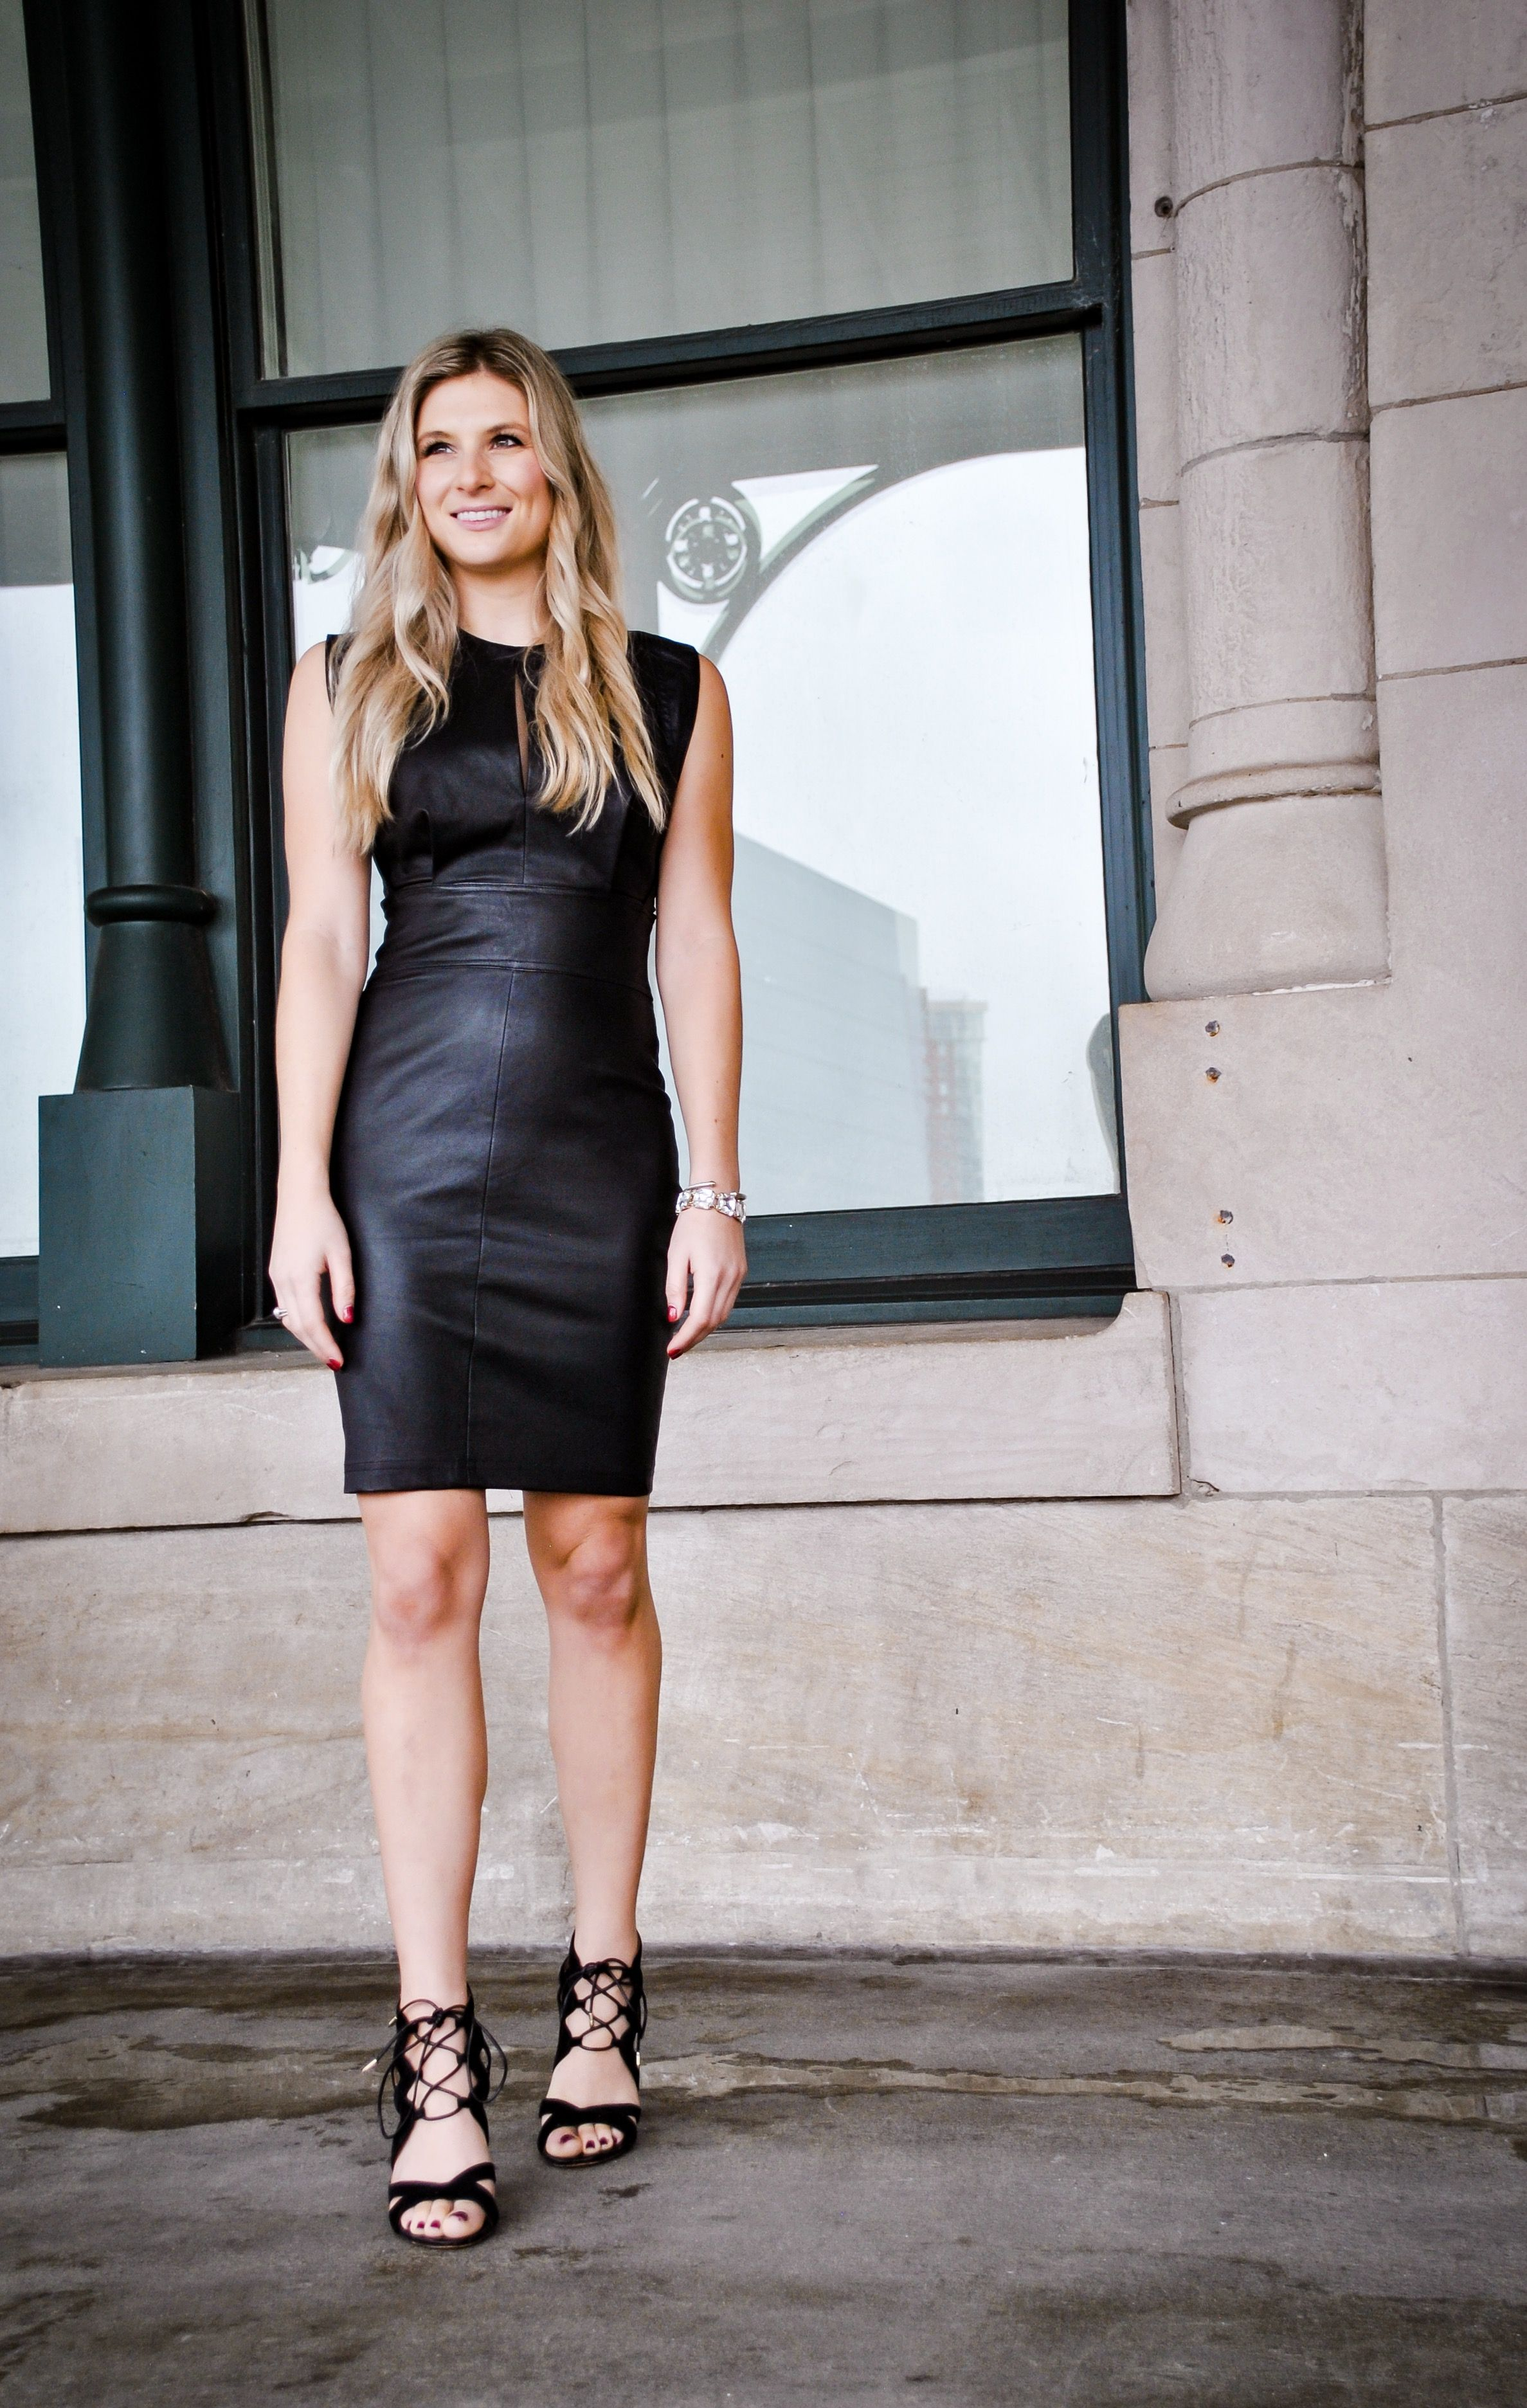 Leather Dress Sheath Nye Outfit Robert Rodriguez Leather Dresses Leather Leggings Look Fashion [ 3745 x 2375 Pixel ]